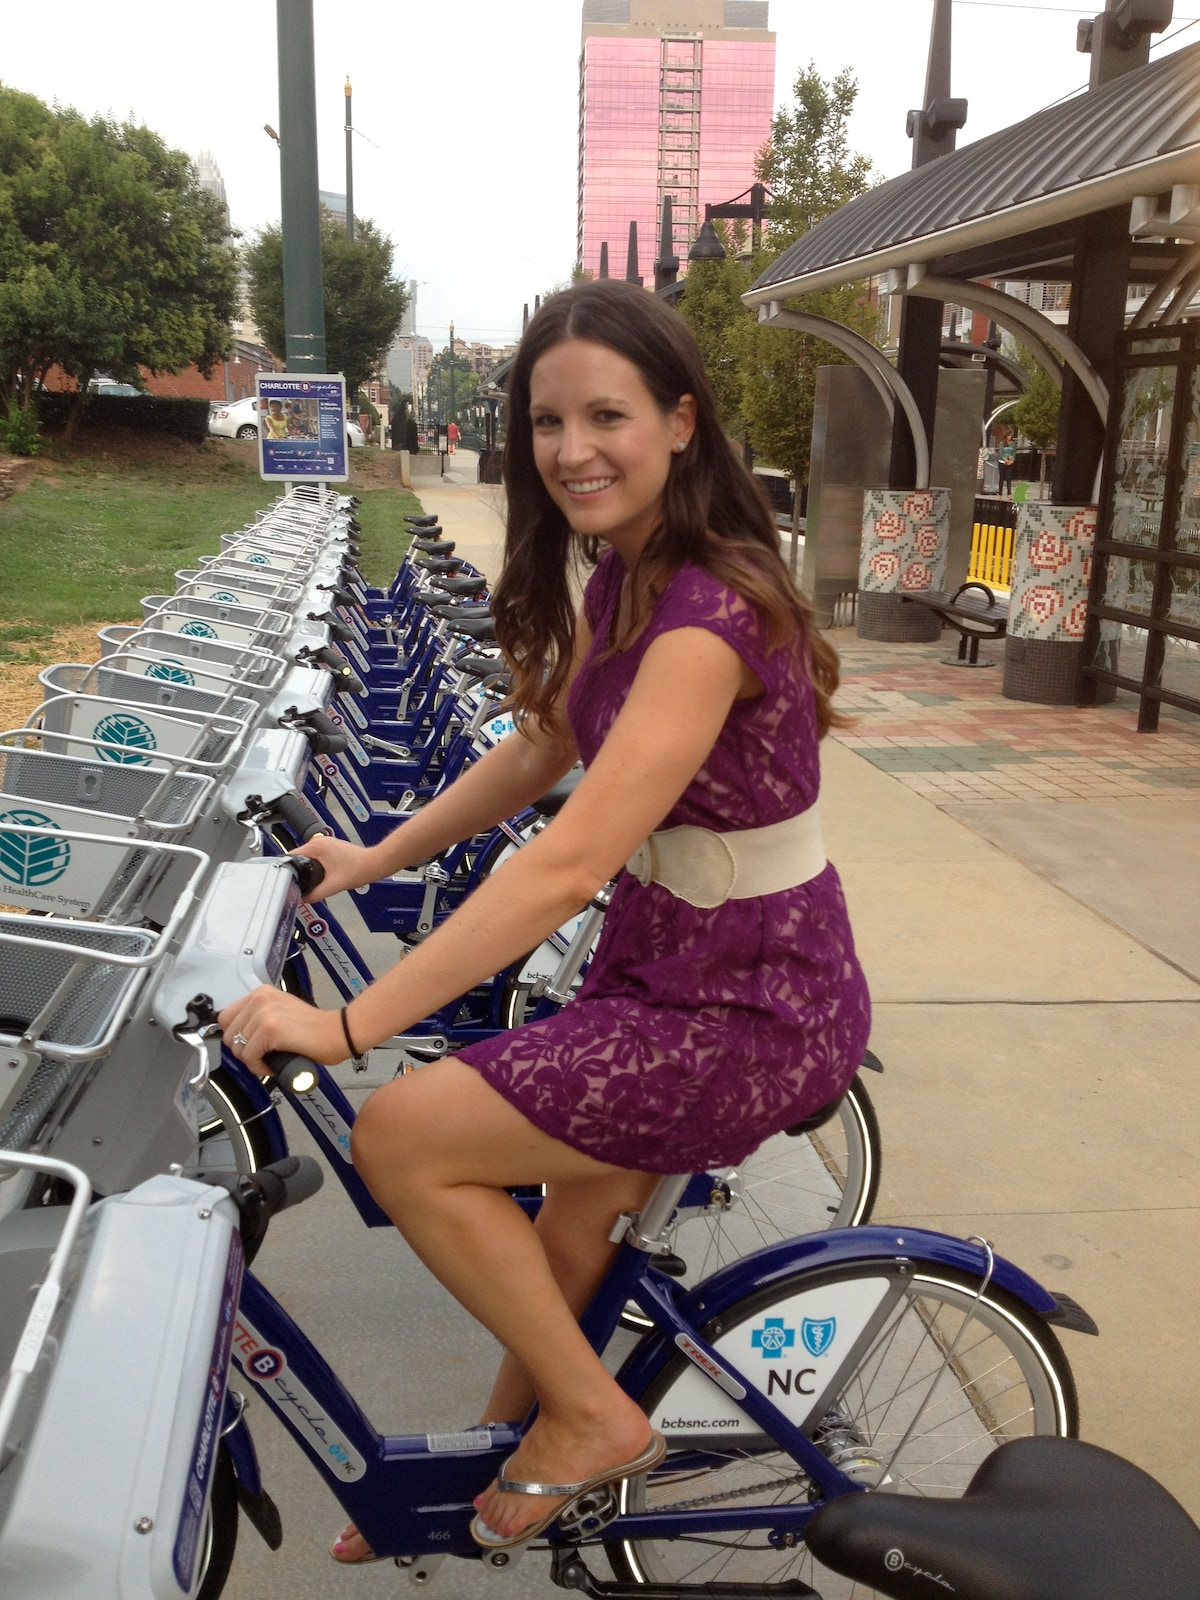 Take a ride on one of the nation's only Bike Share programs.  Just a few blocks away.